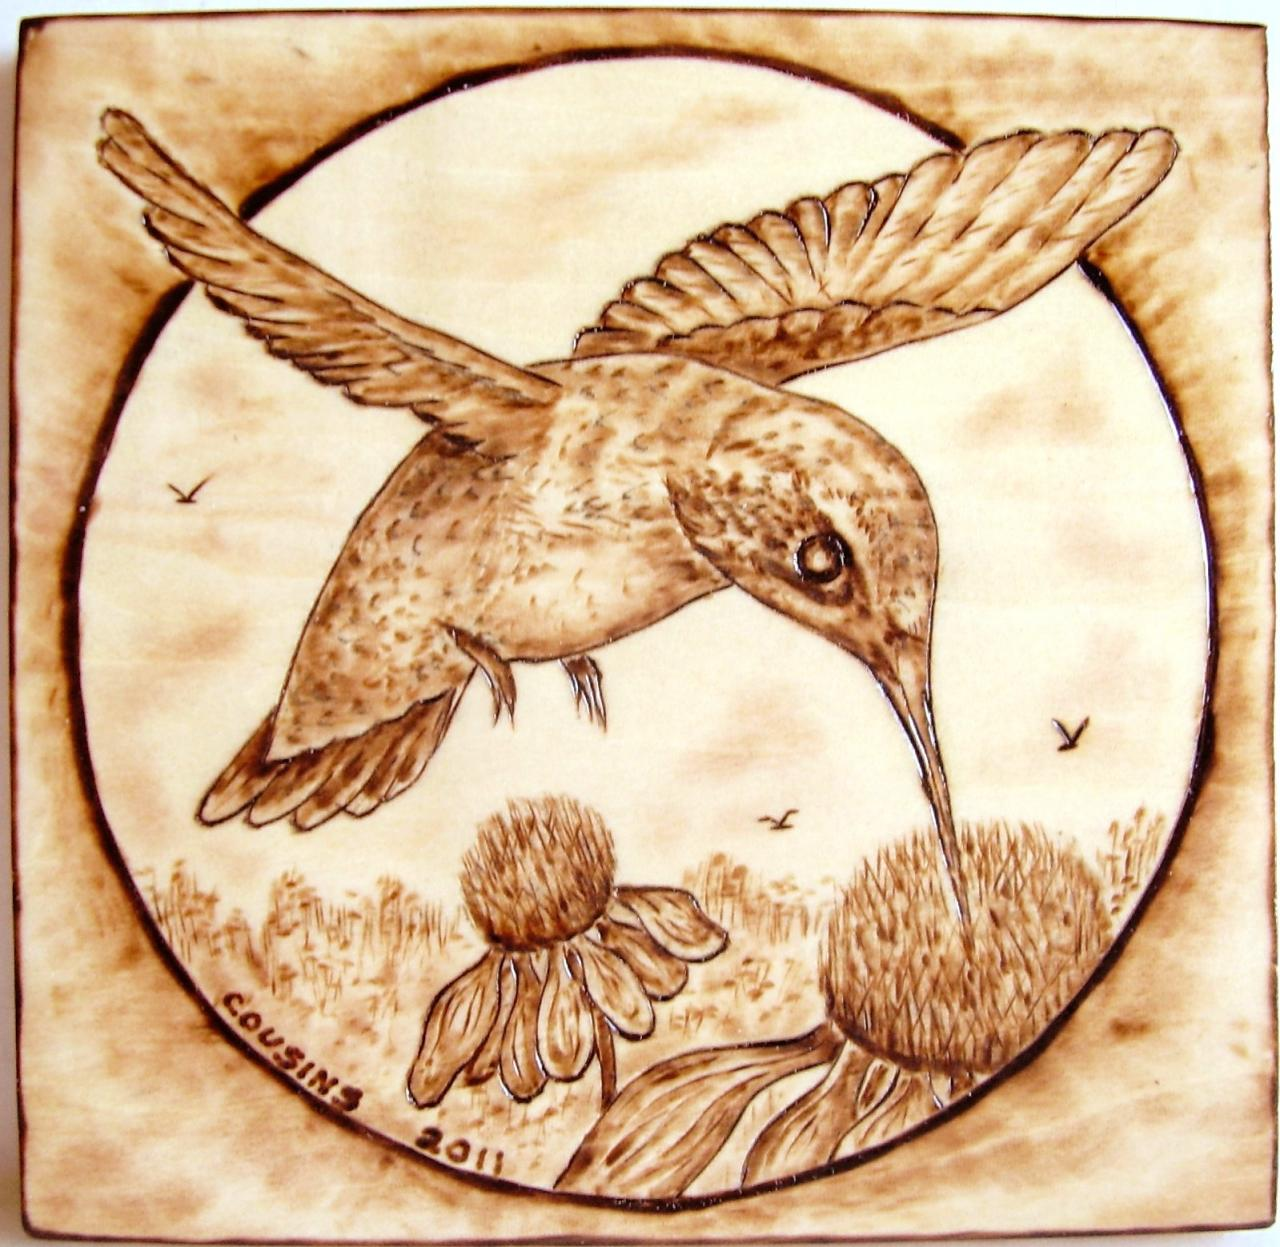 ... on Pinterest | Pyrography, Wood Burning and Pyrography Patterns